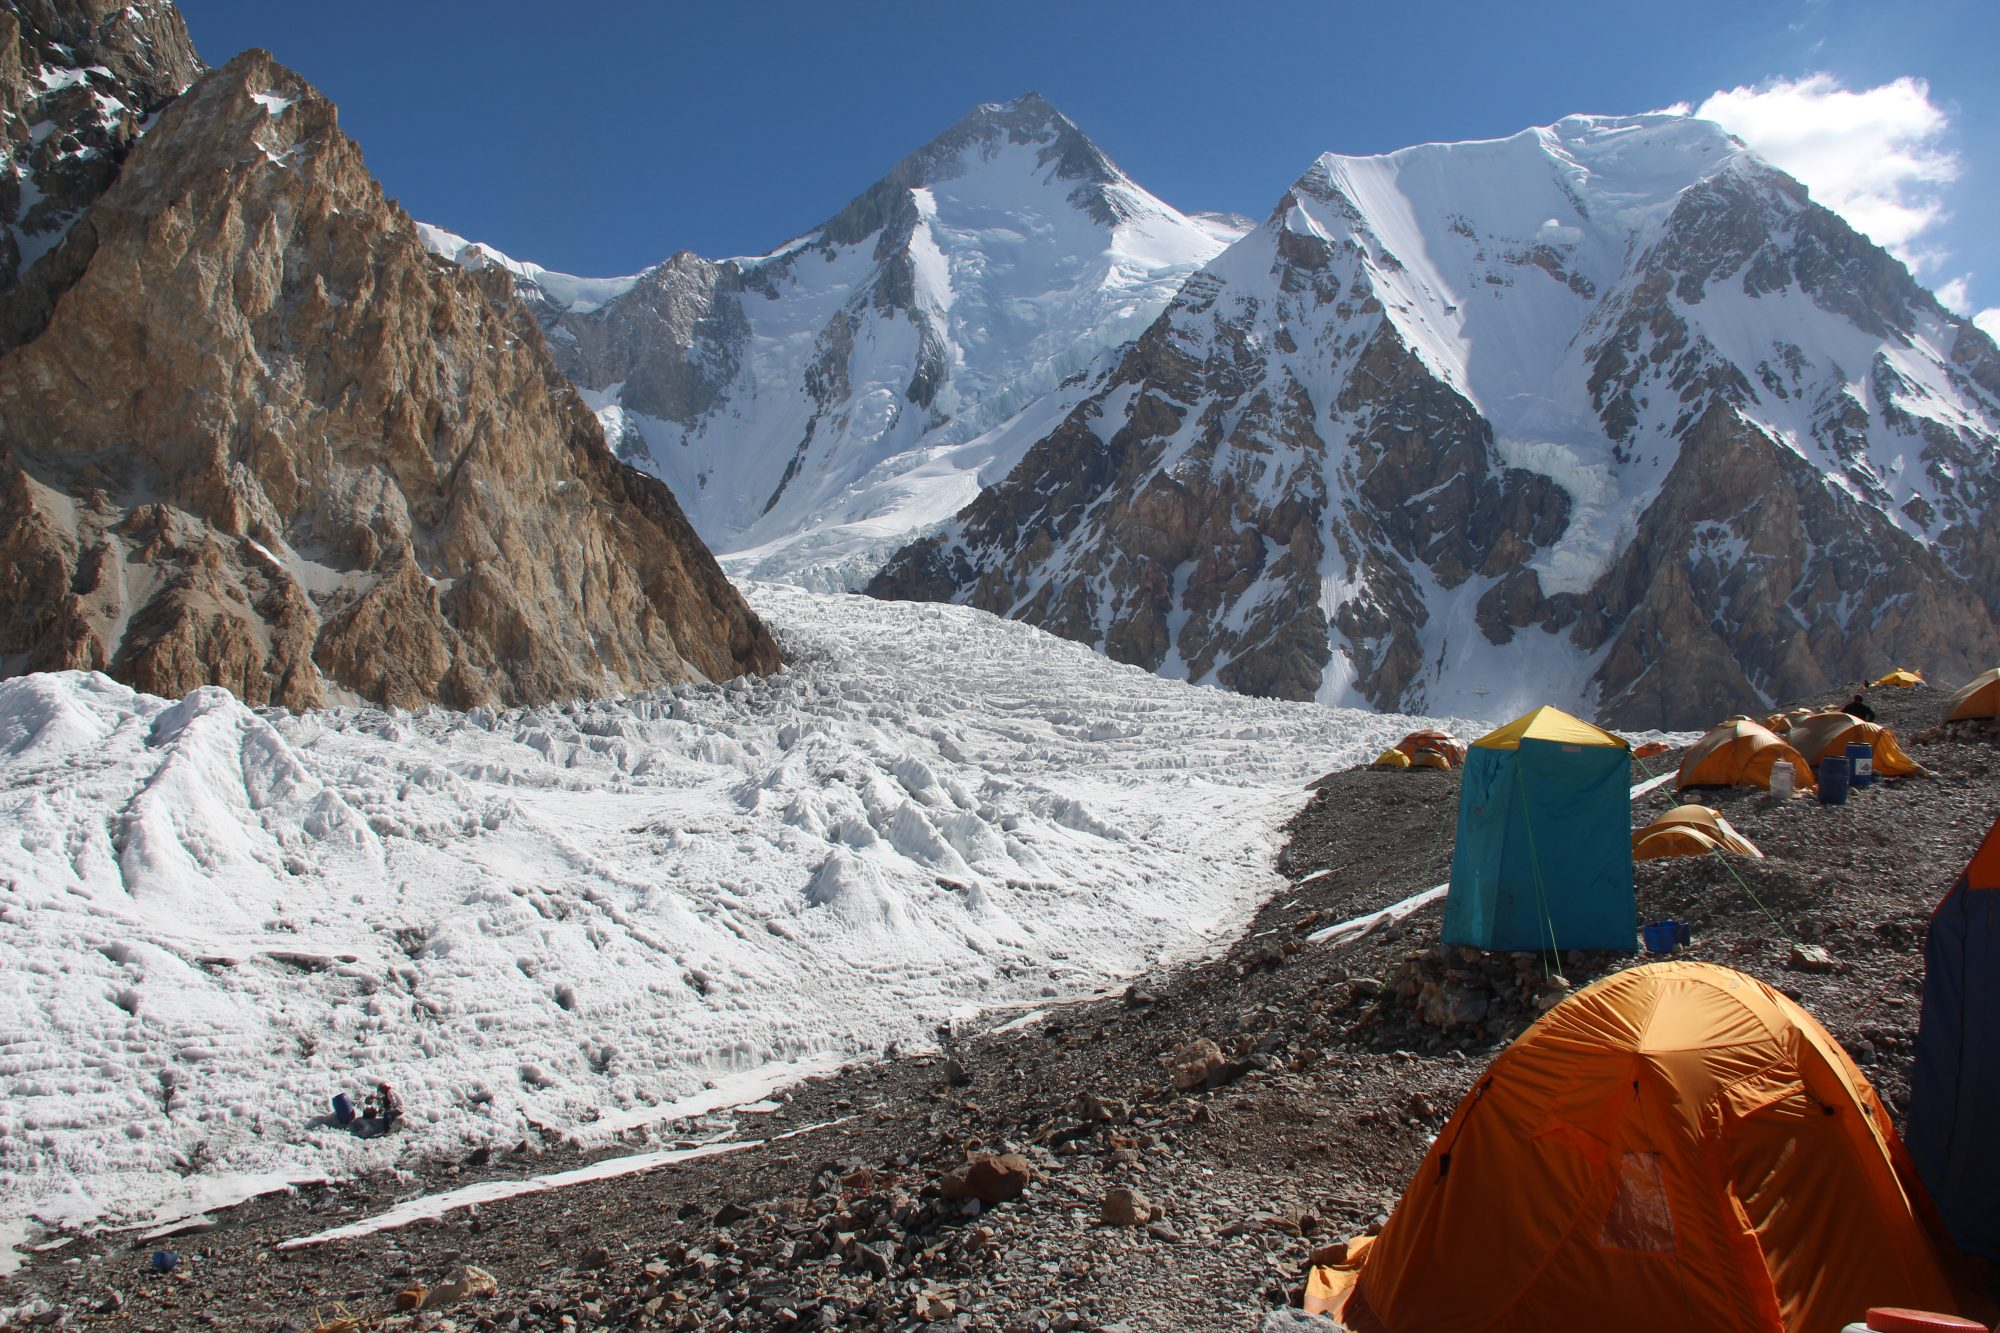 Temporary office (base camp) on Baltoro Glacier, Pakistan with Gasherbrum I in the background.